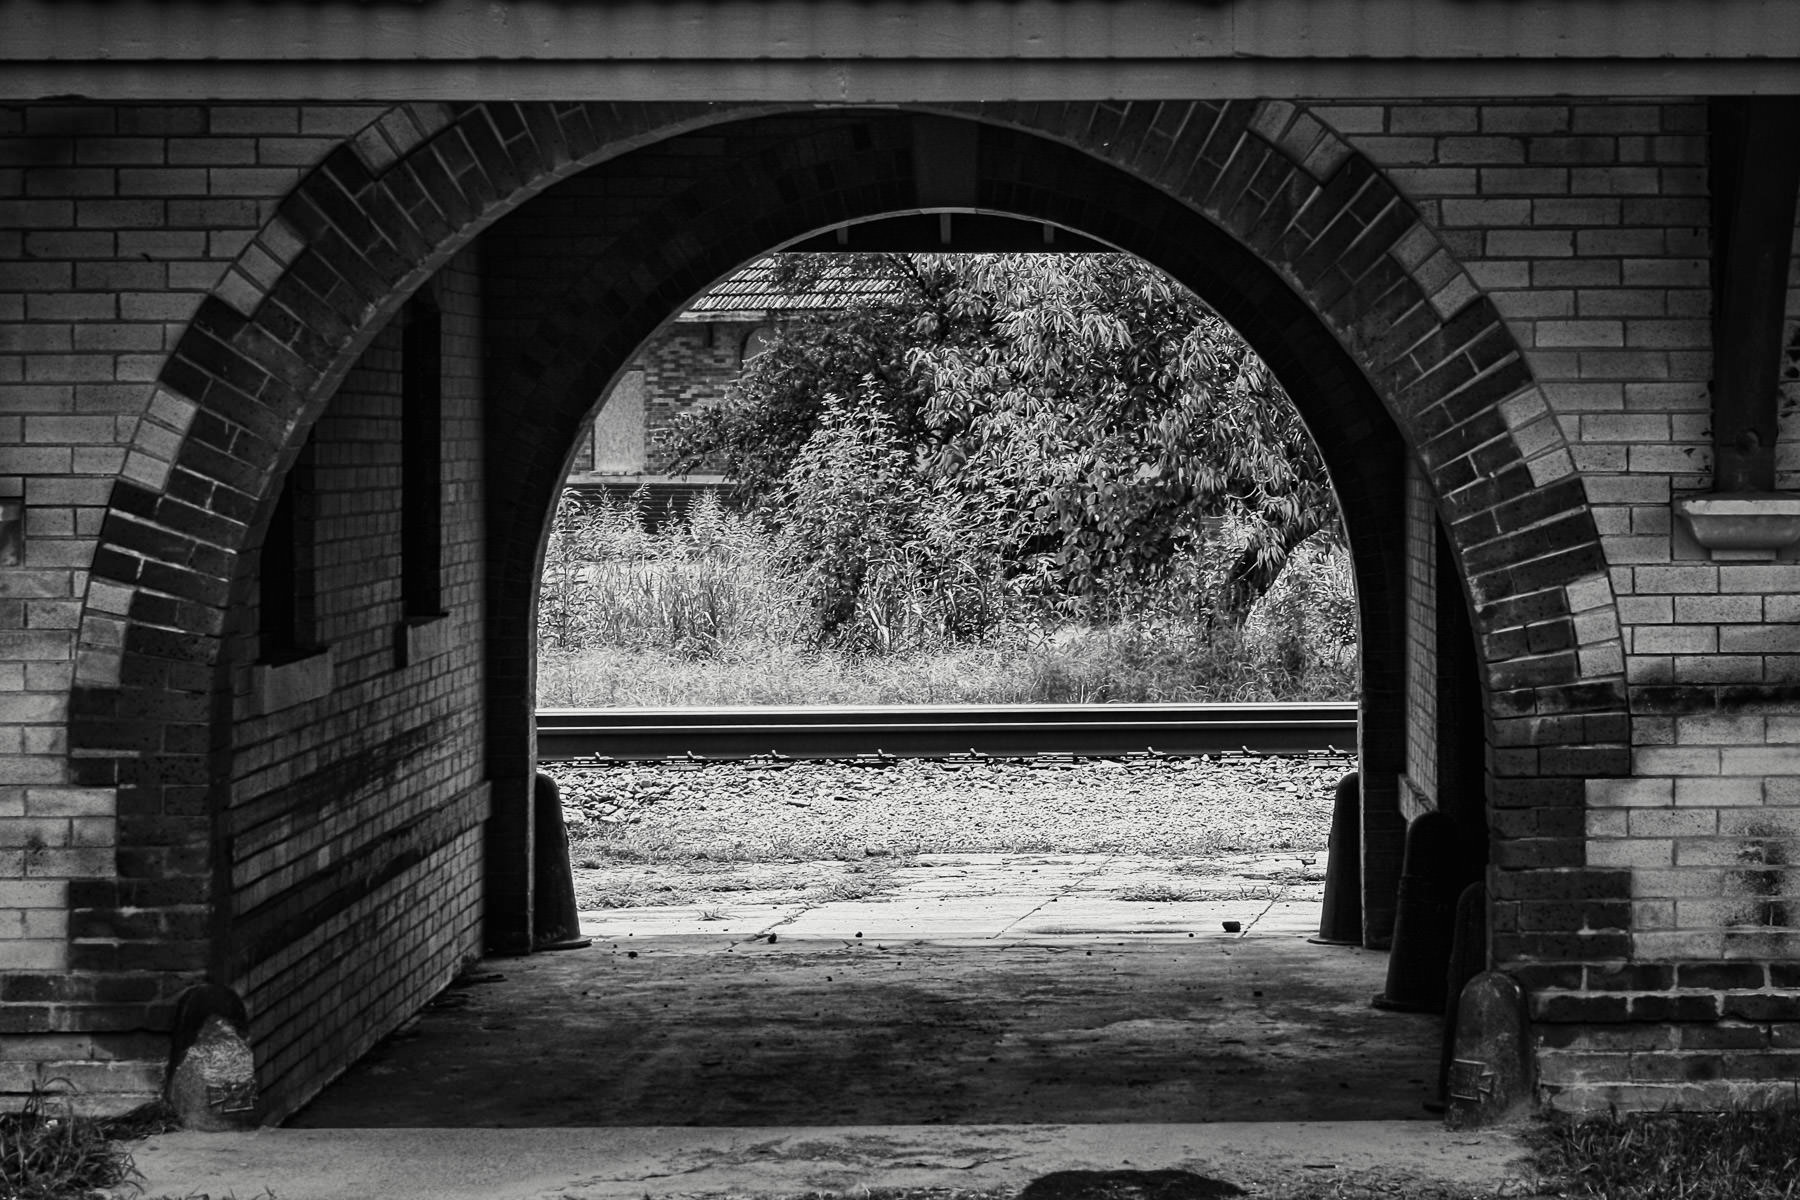 Detail of an old train depot in Waxahachie, Texas.